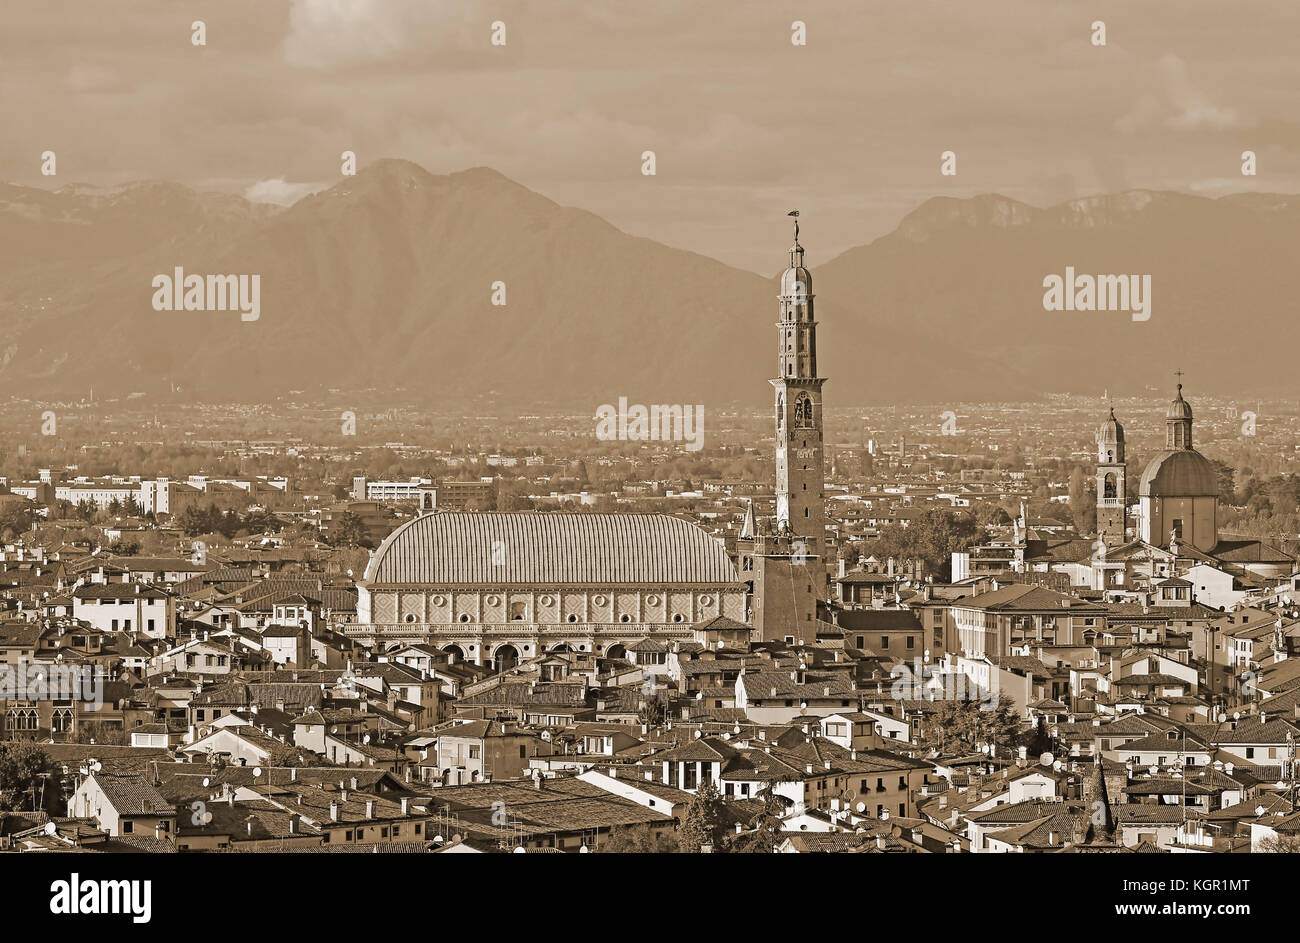 wide panoramic with of VICENZA city in Italy with Sepia Effect and the famous monument called Basilica Palladiana - Stock Image